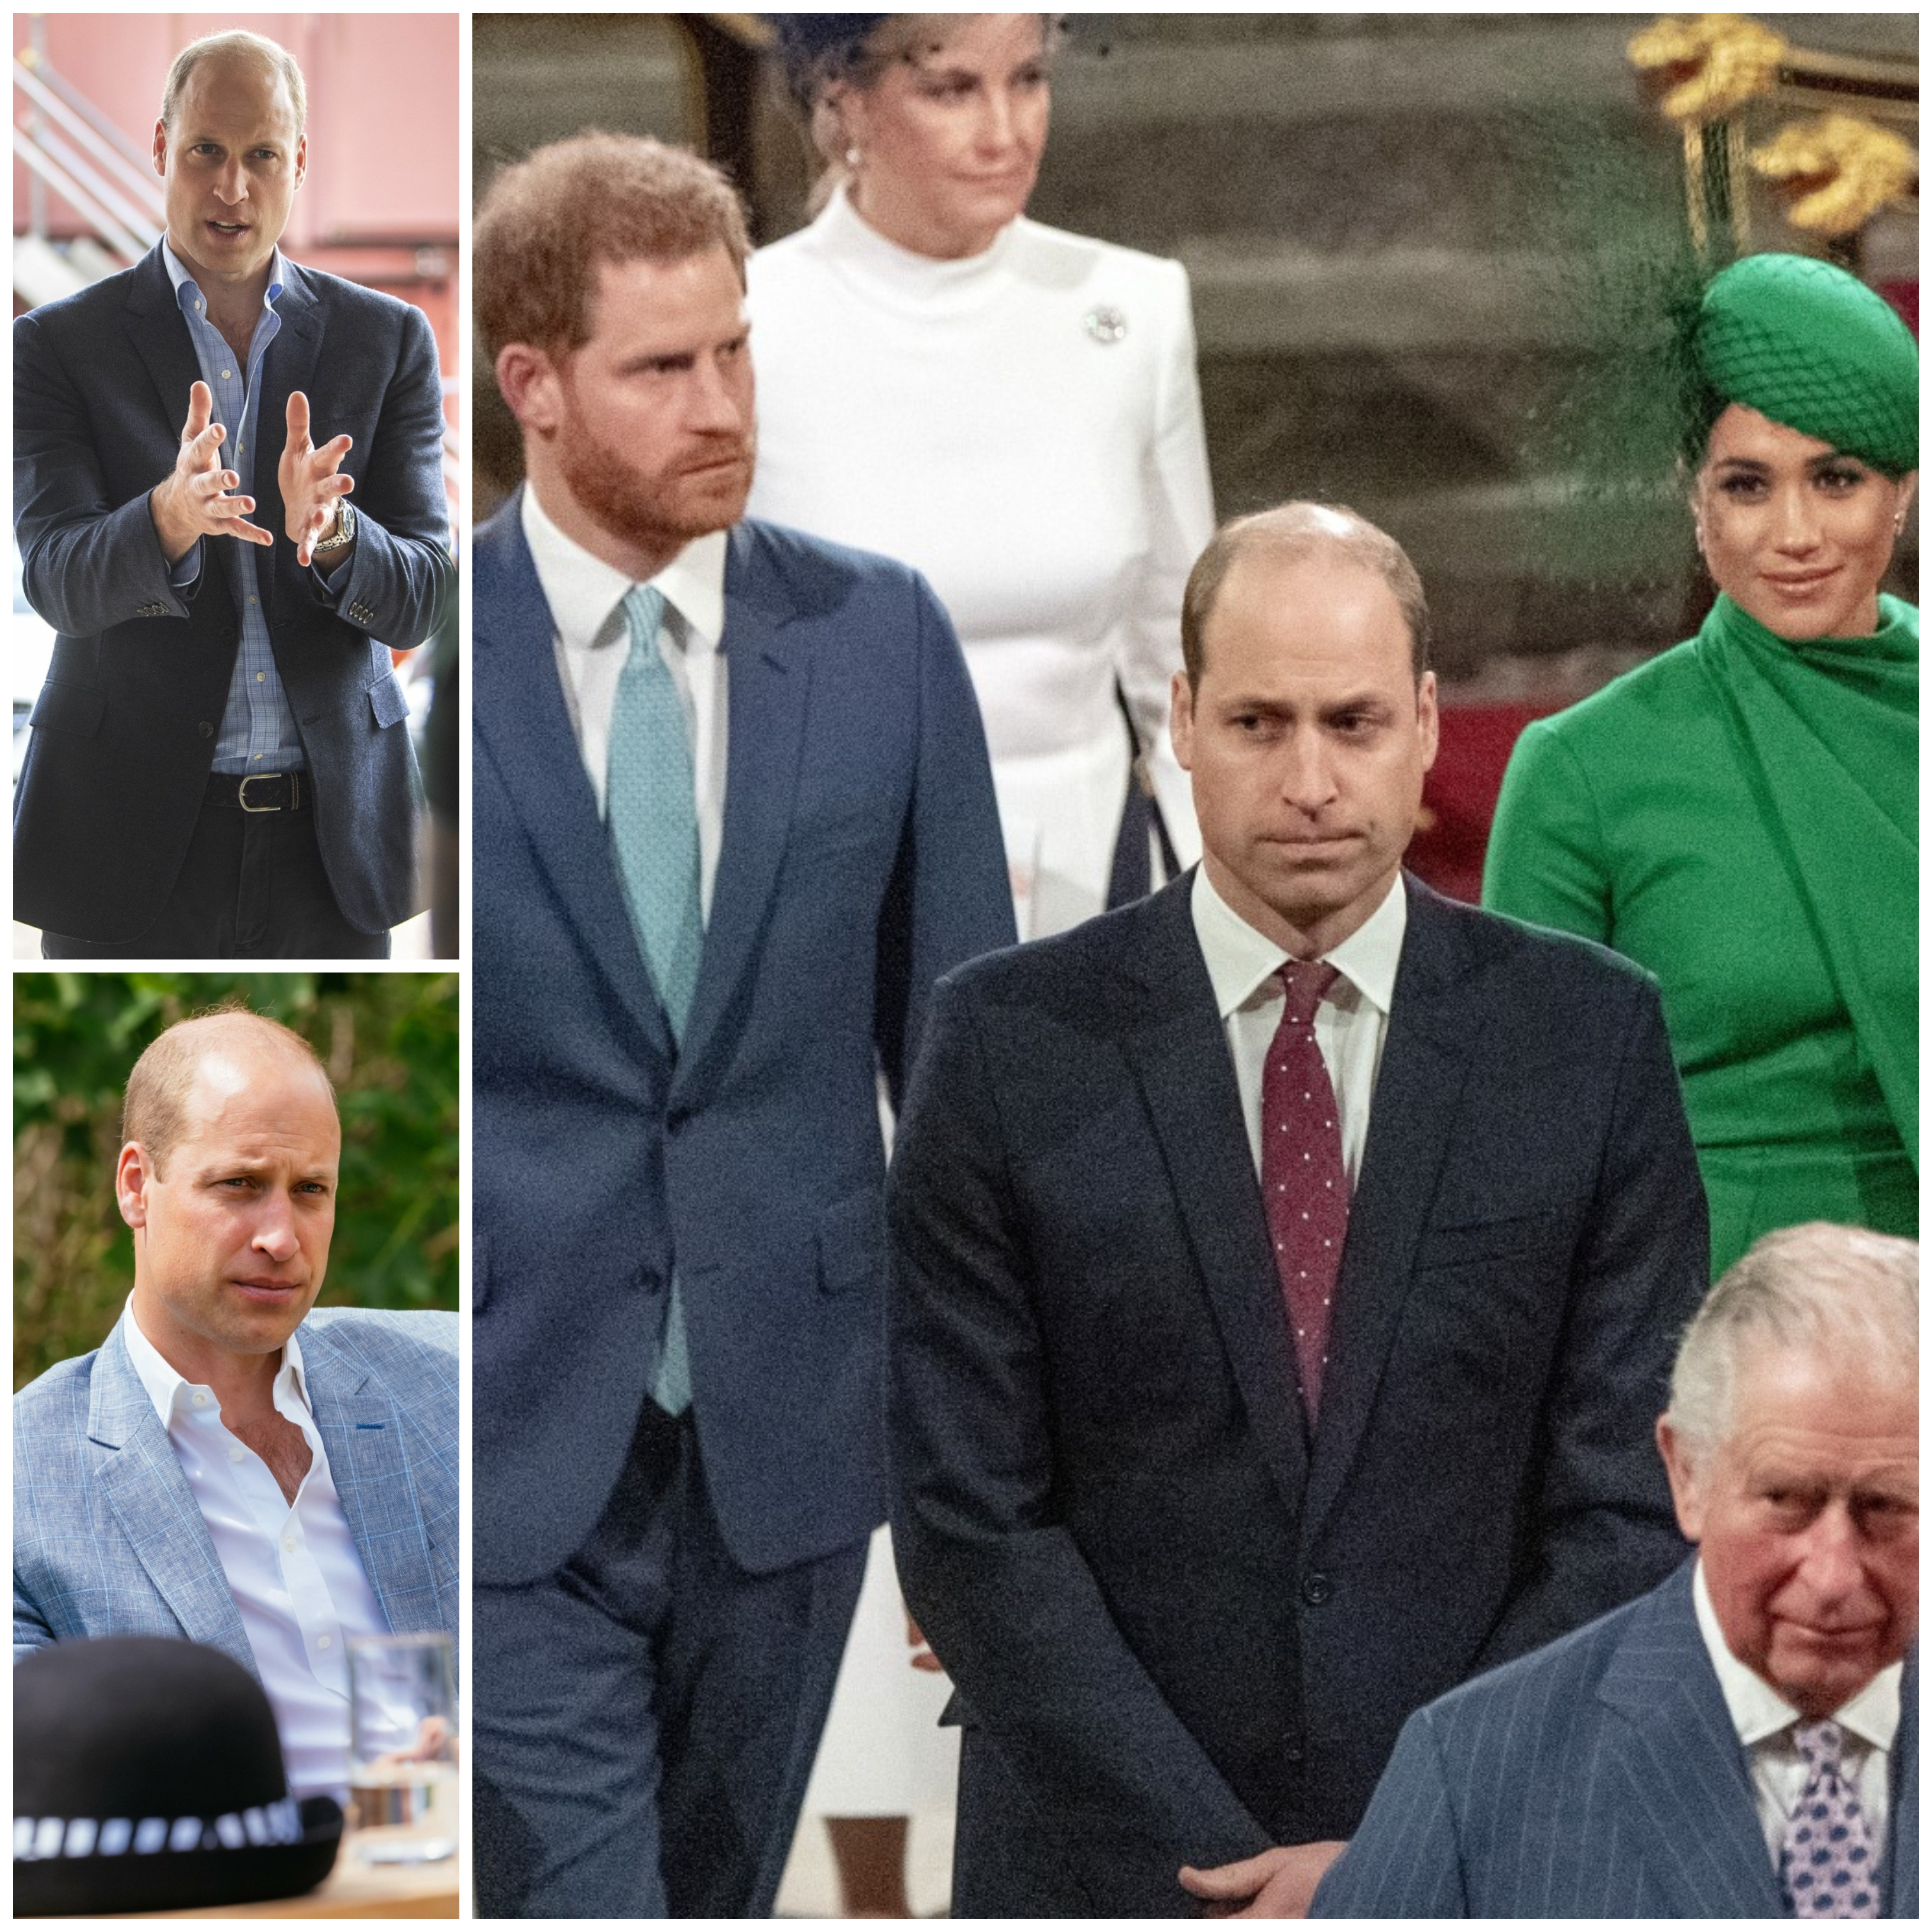 Collage of Prince William